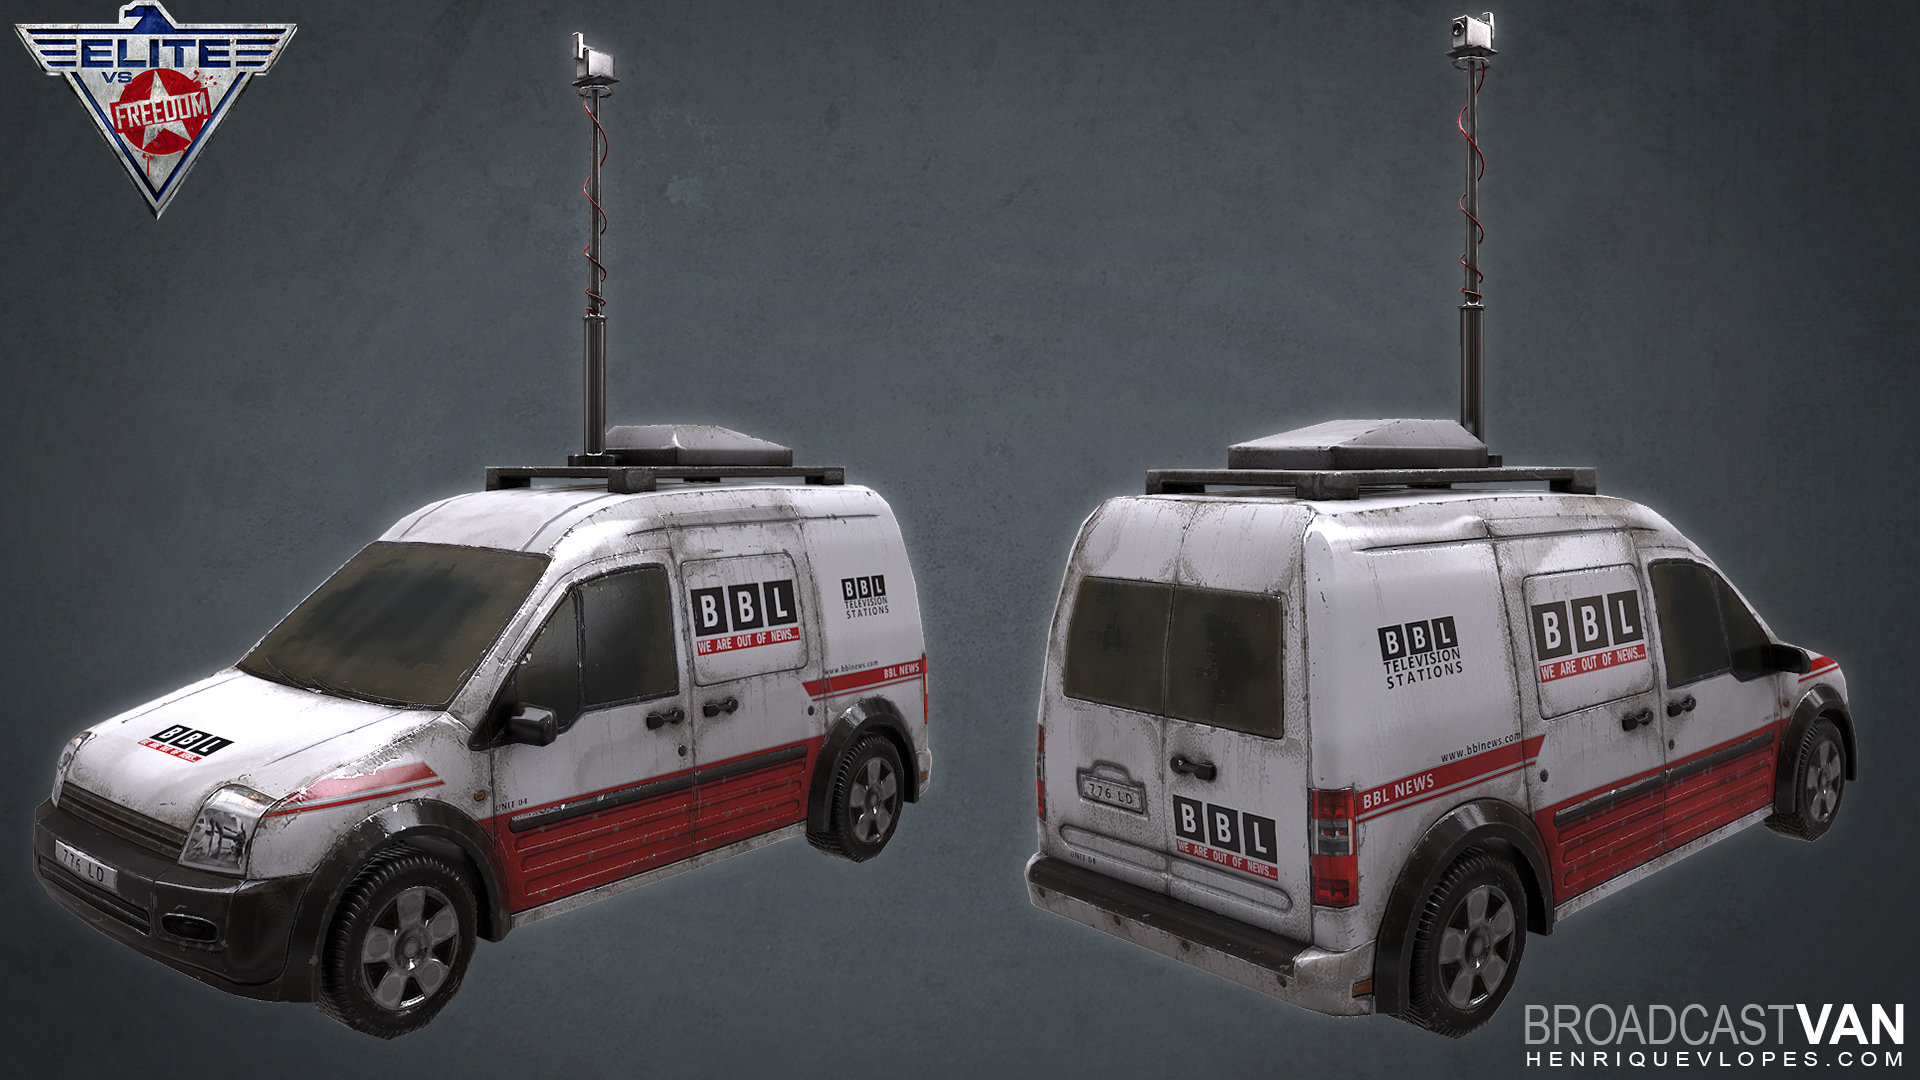 Small broadcast van